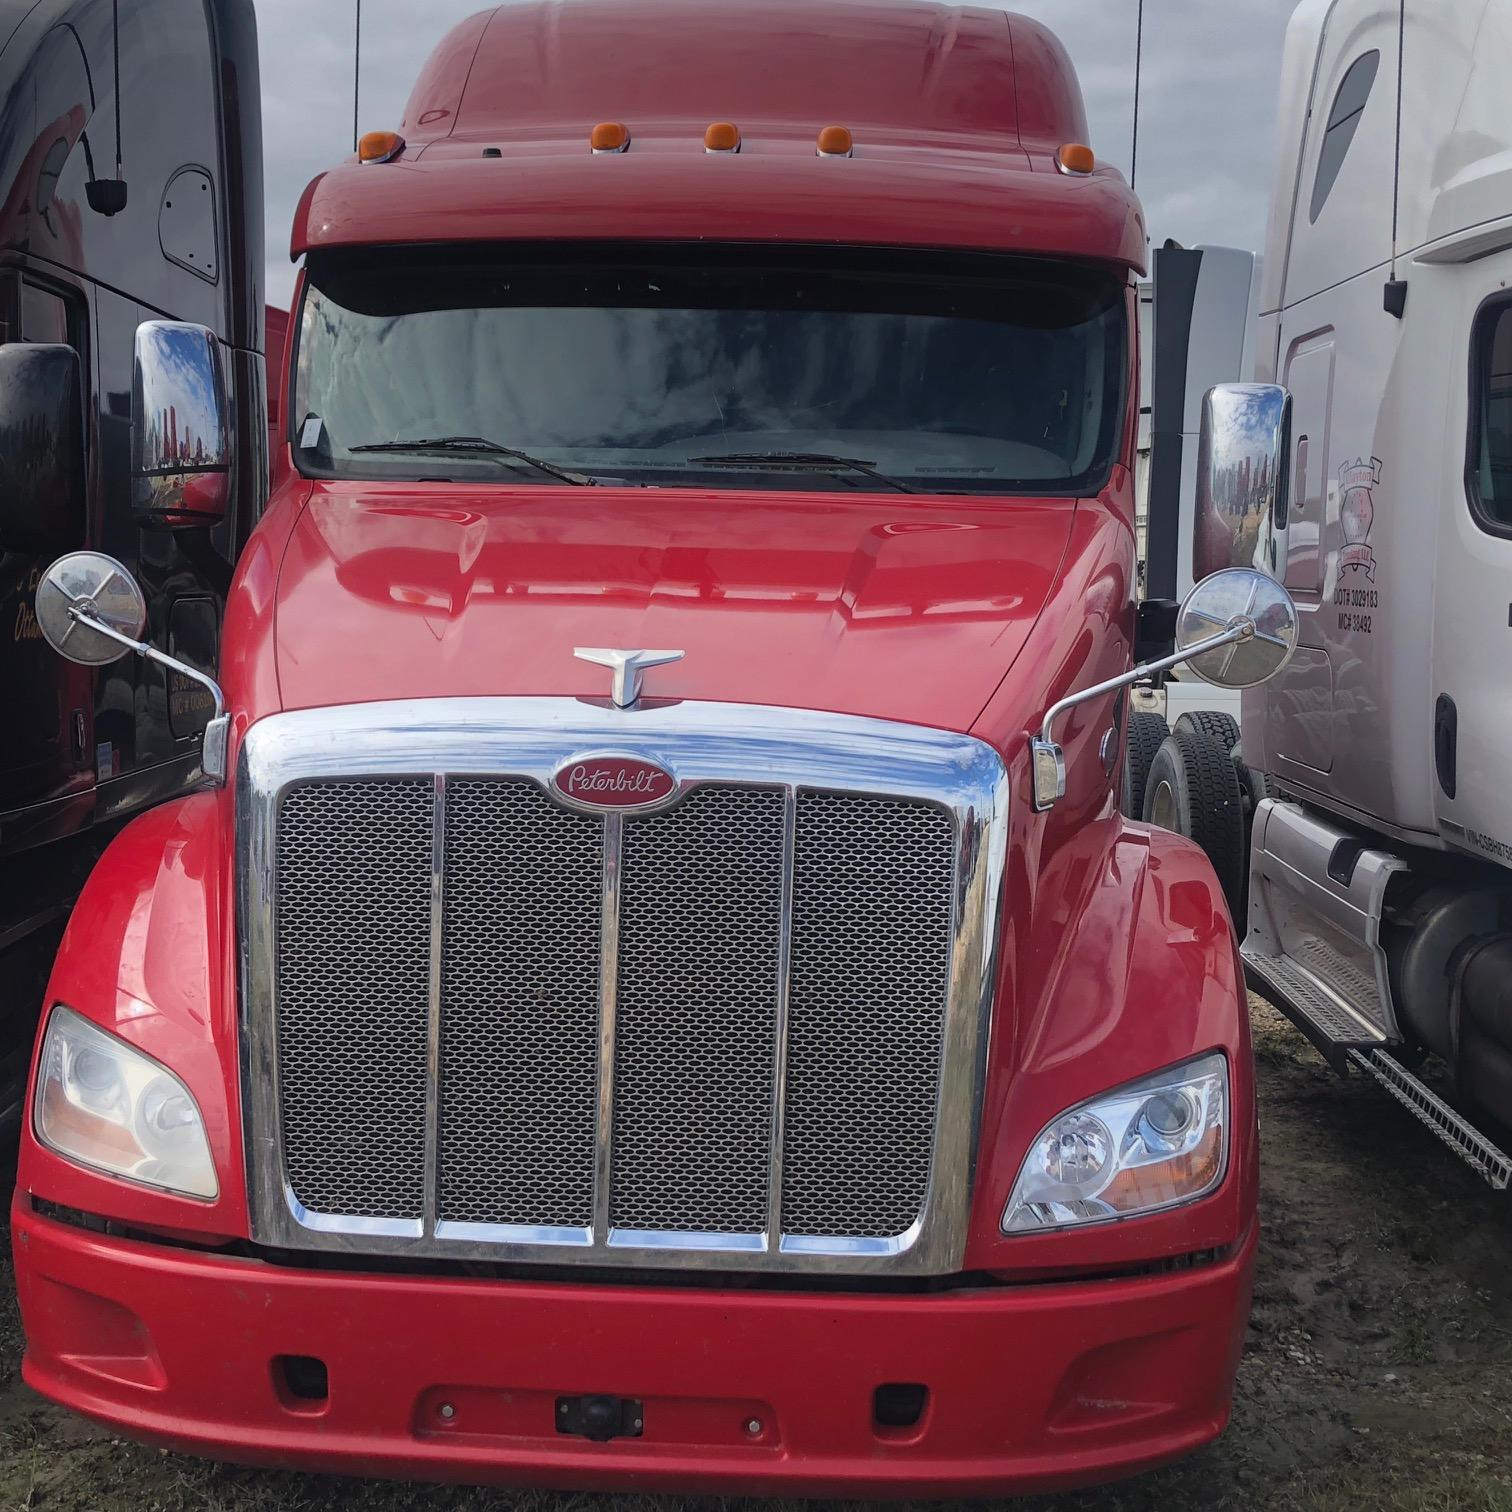 USED 2013 PETERBILT 587 DAYCAB TRUCK #135112